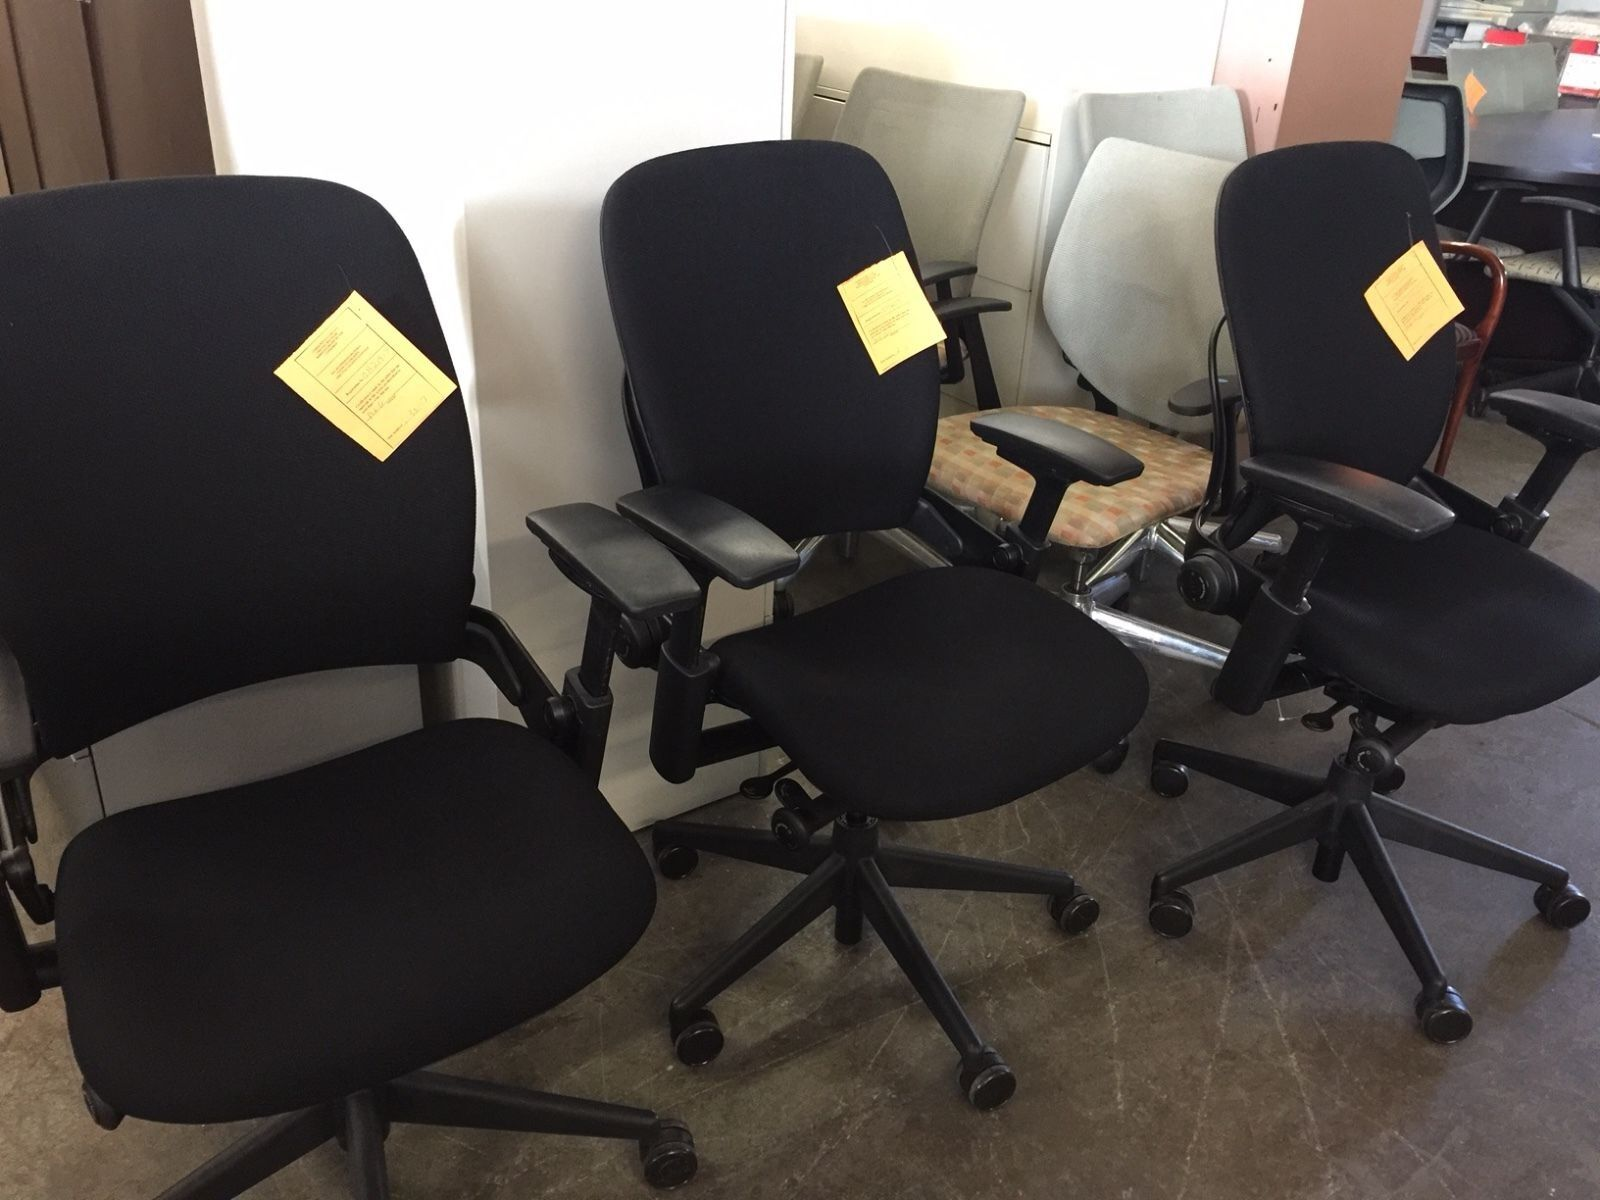 Executive Chair by Steelcase Leap V2 Model fully Loaded